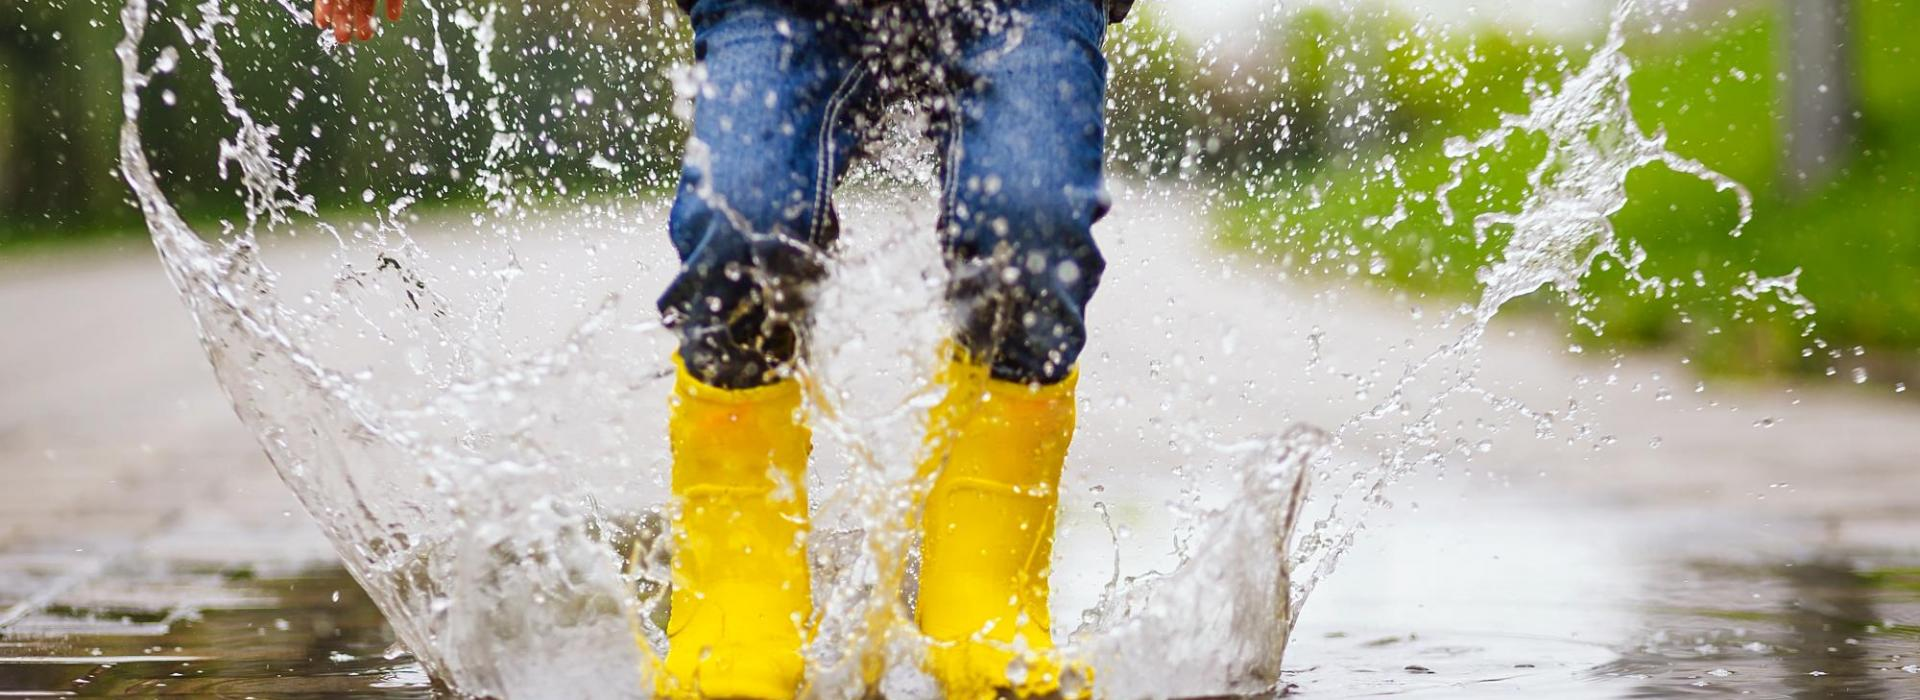 A young child splashes in puddle in a lane, wearing bright yellow boots and a navy coat.